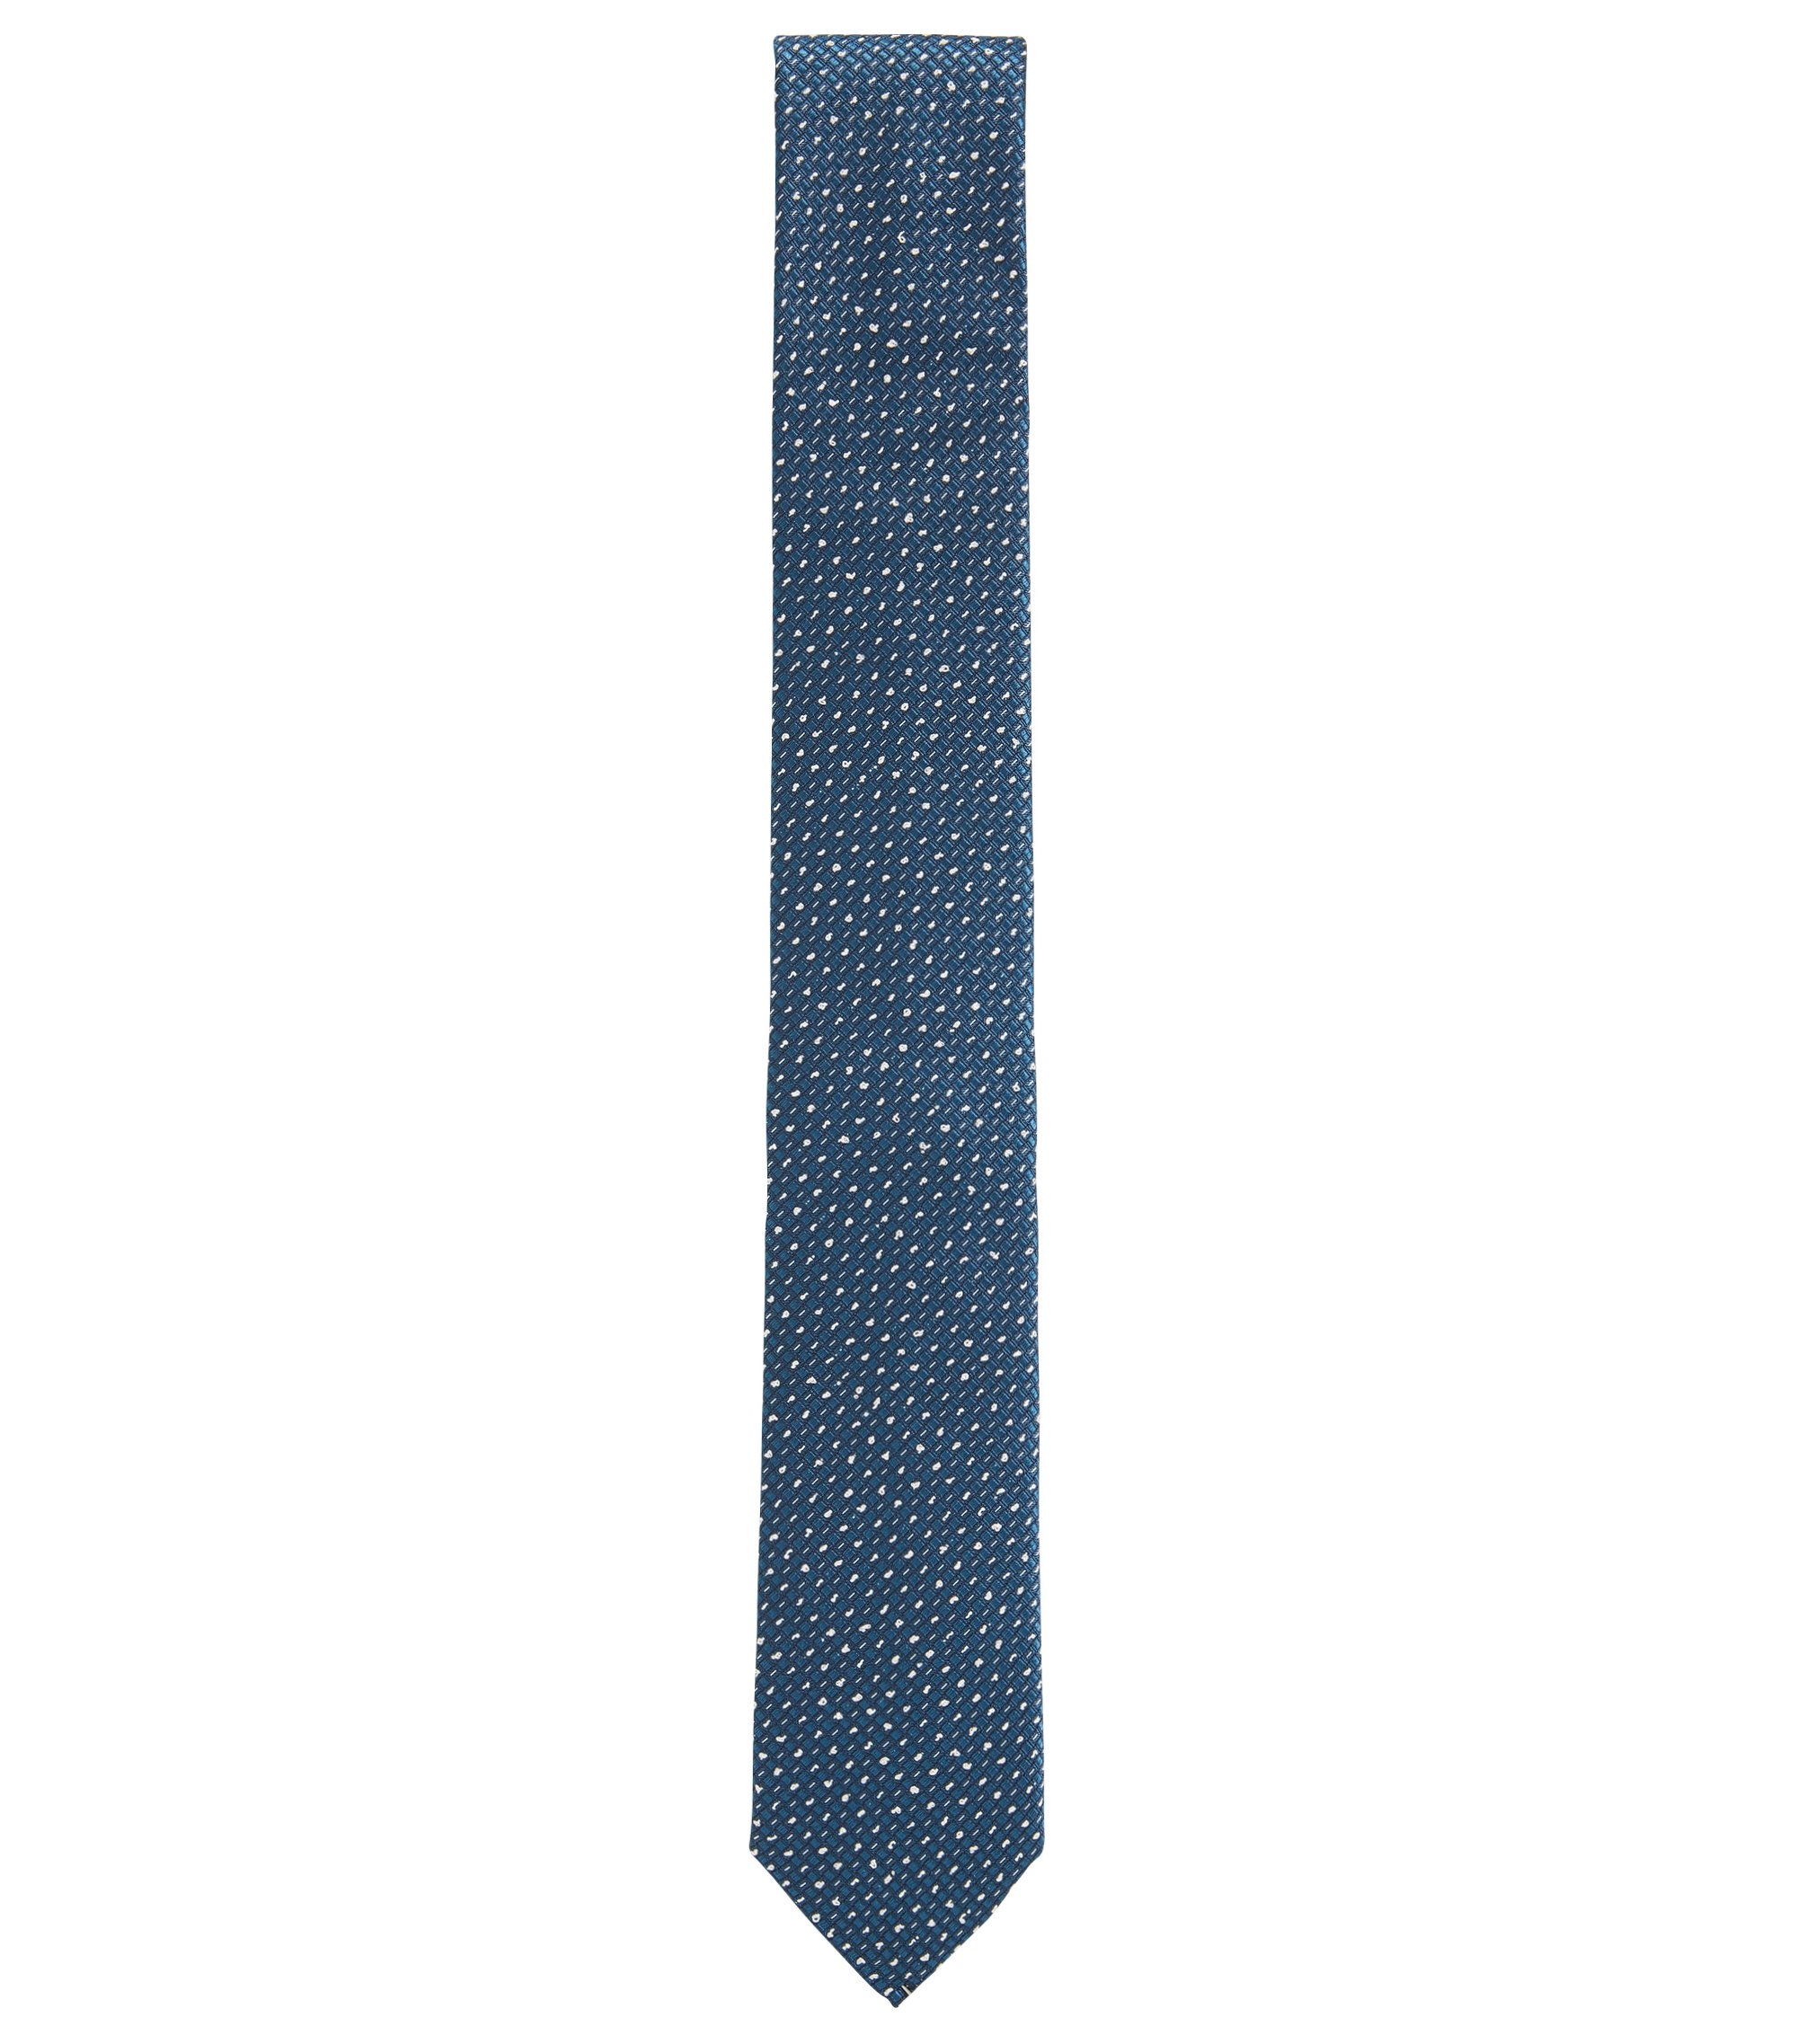 Microprint Embroidered Italian Silk Slim Tie, Dark Blue